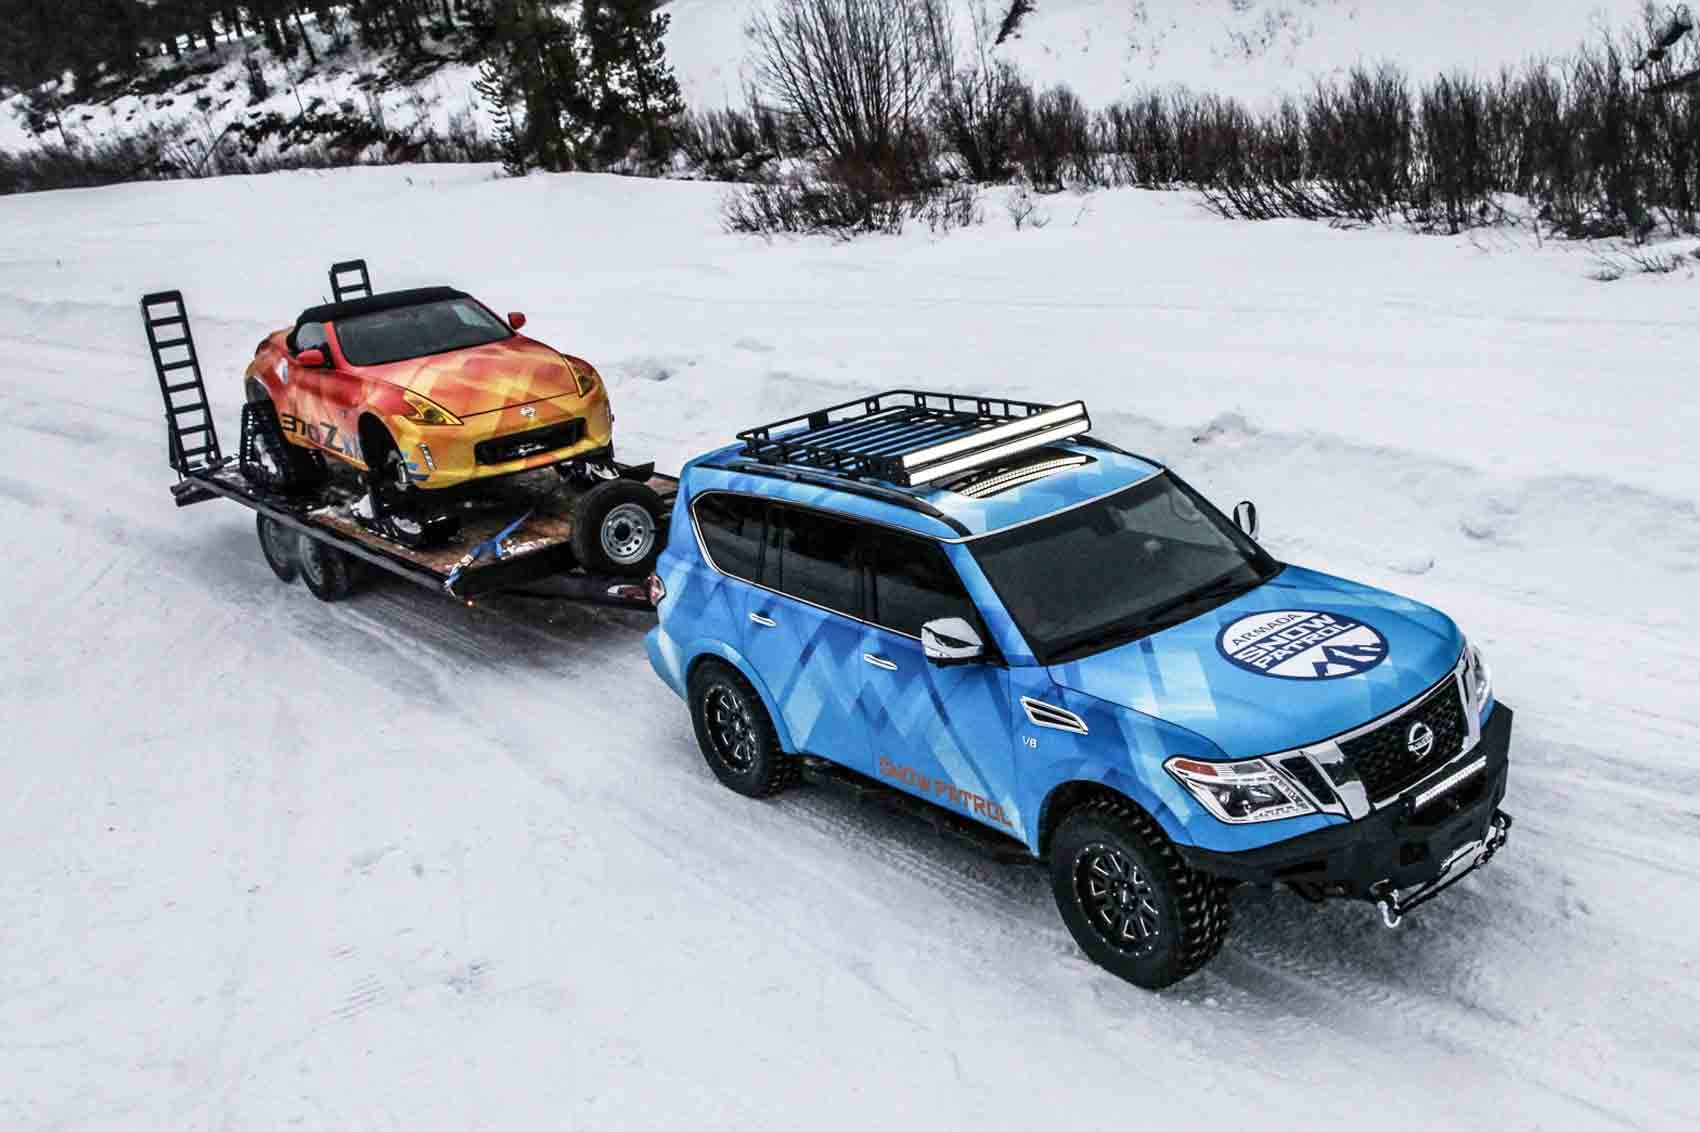 Get your snow drift on with the Nissan 370Zki snowmobile ...